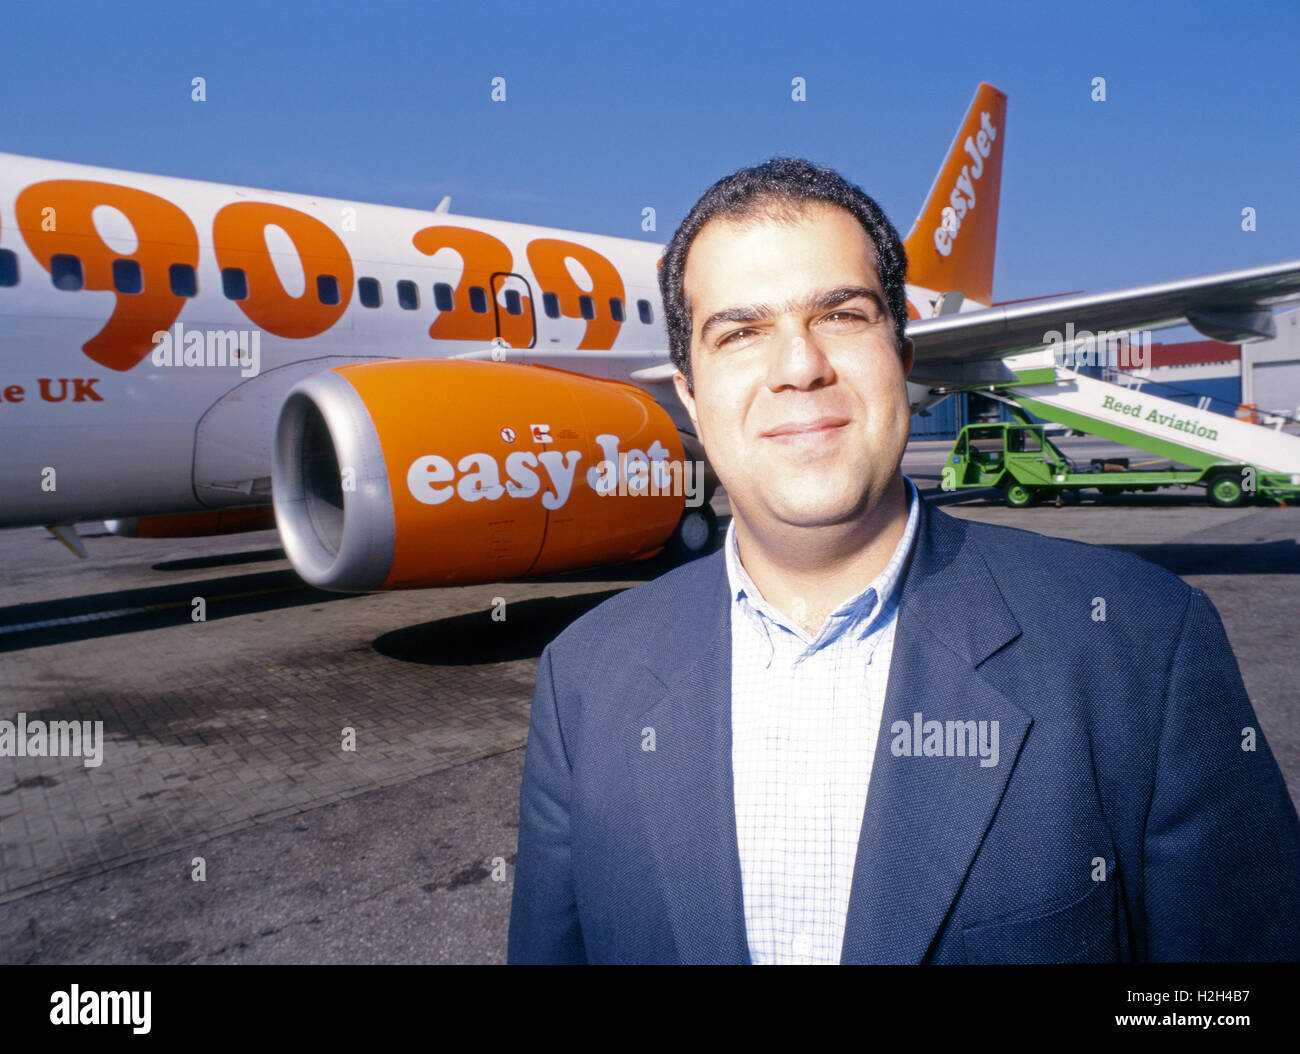 easyJet founder Stelios Haji-Ioannou in front of one of his planes at Luton Airport, UK - Stock Image